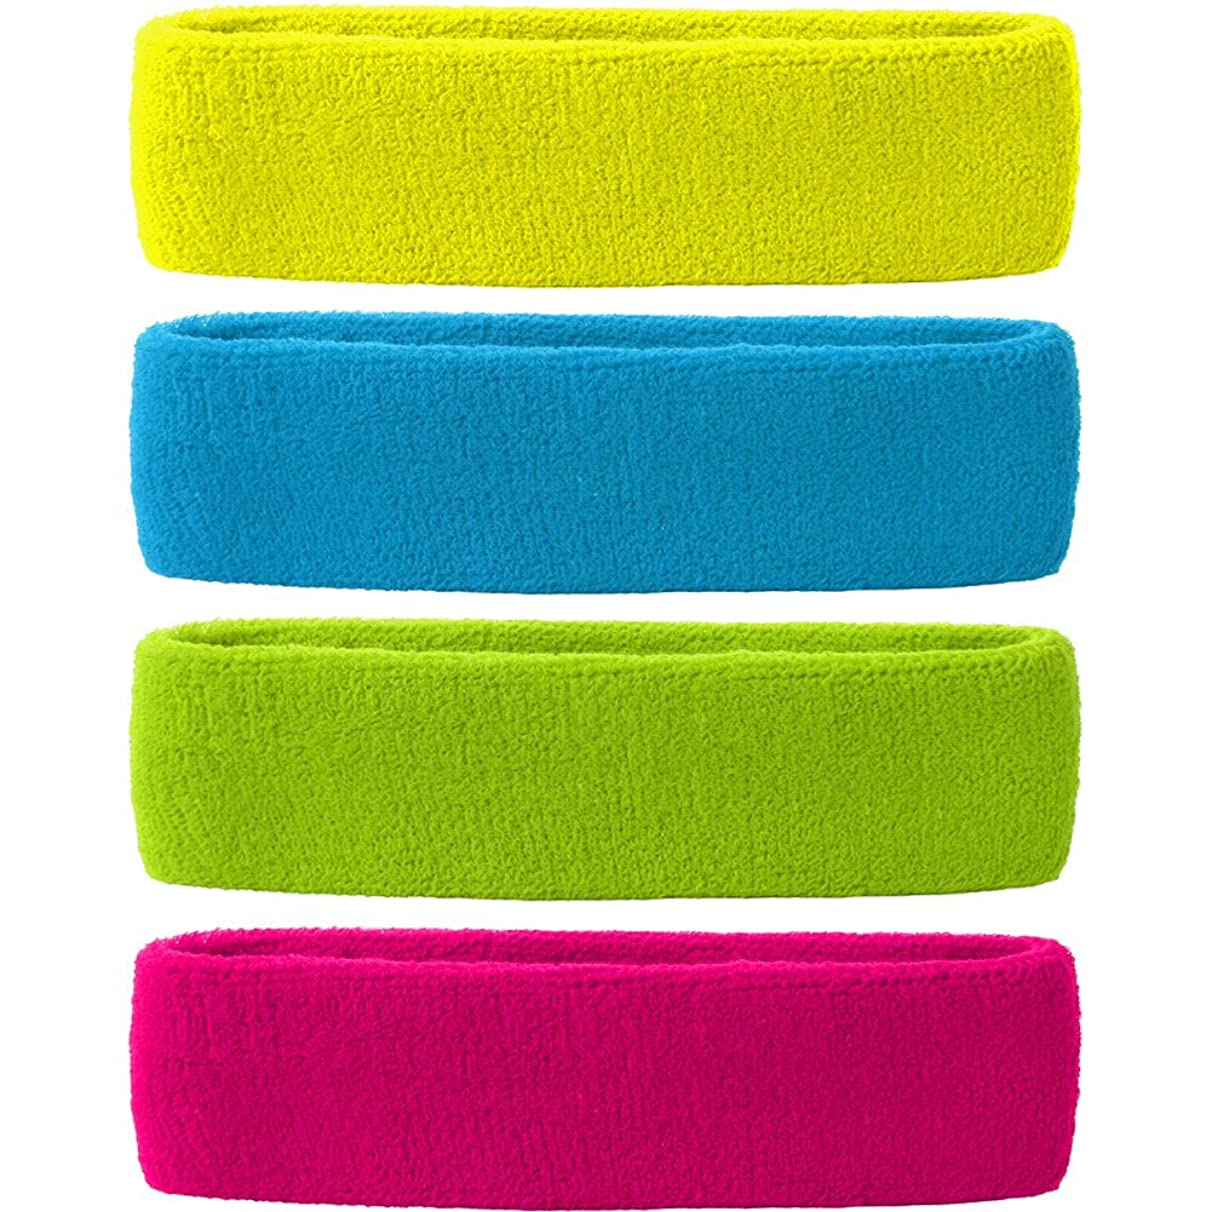 MAKLULU 4PCS Pack Colorful Sports & Outdoors Double Sweat Headbands Terry Cloth Moisture Wicking with 2 ply 100% cotton surface